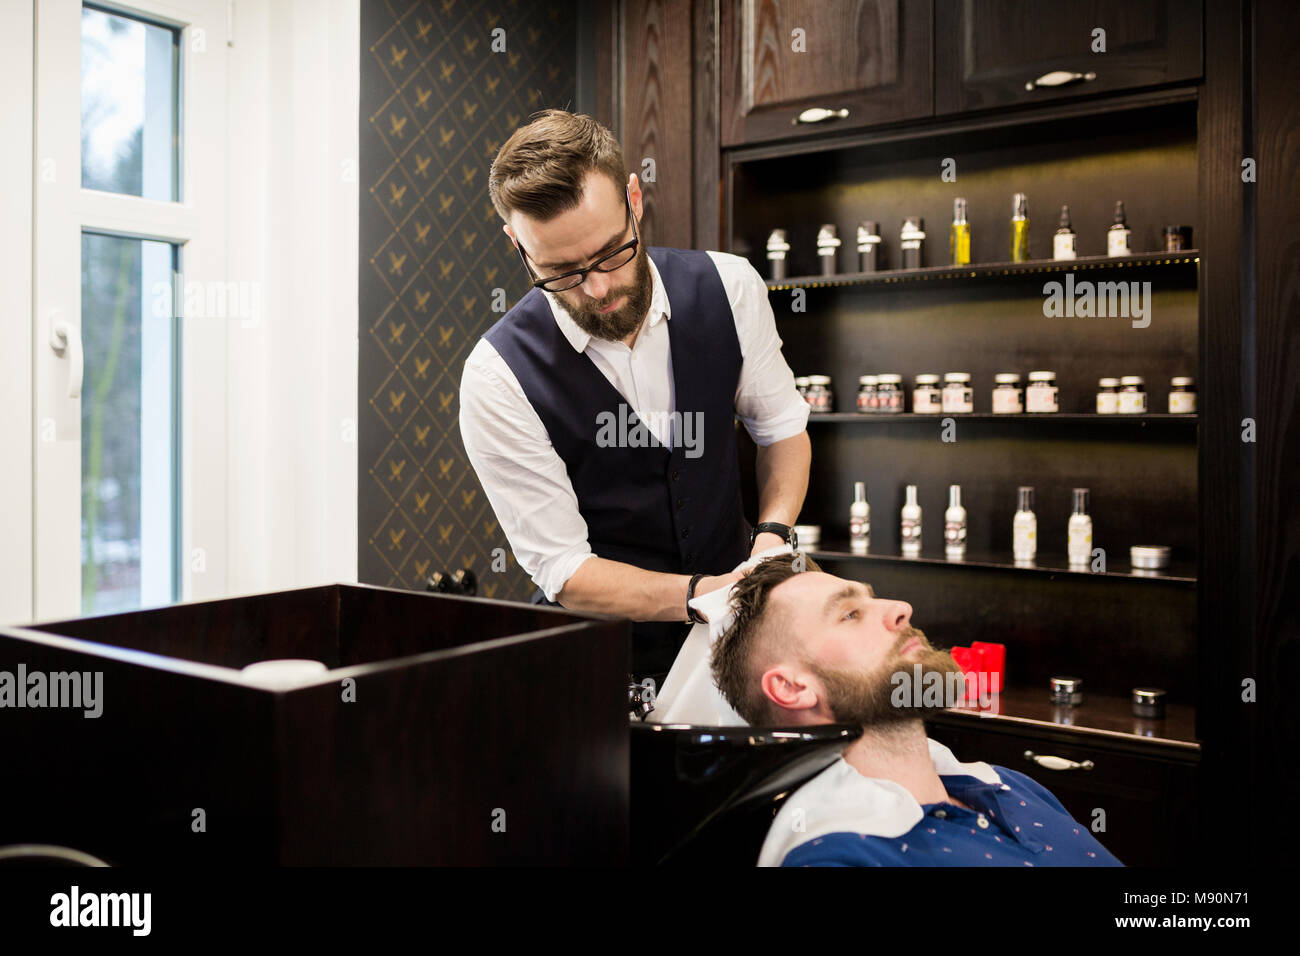 Portrait of young barber wiping customer hair with towel - Stock Image